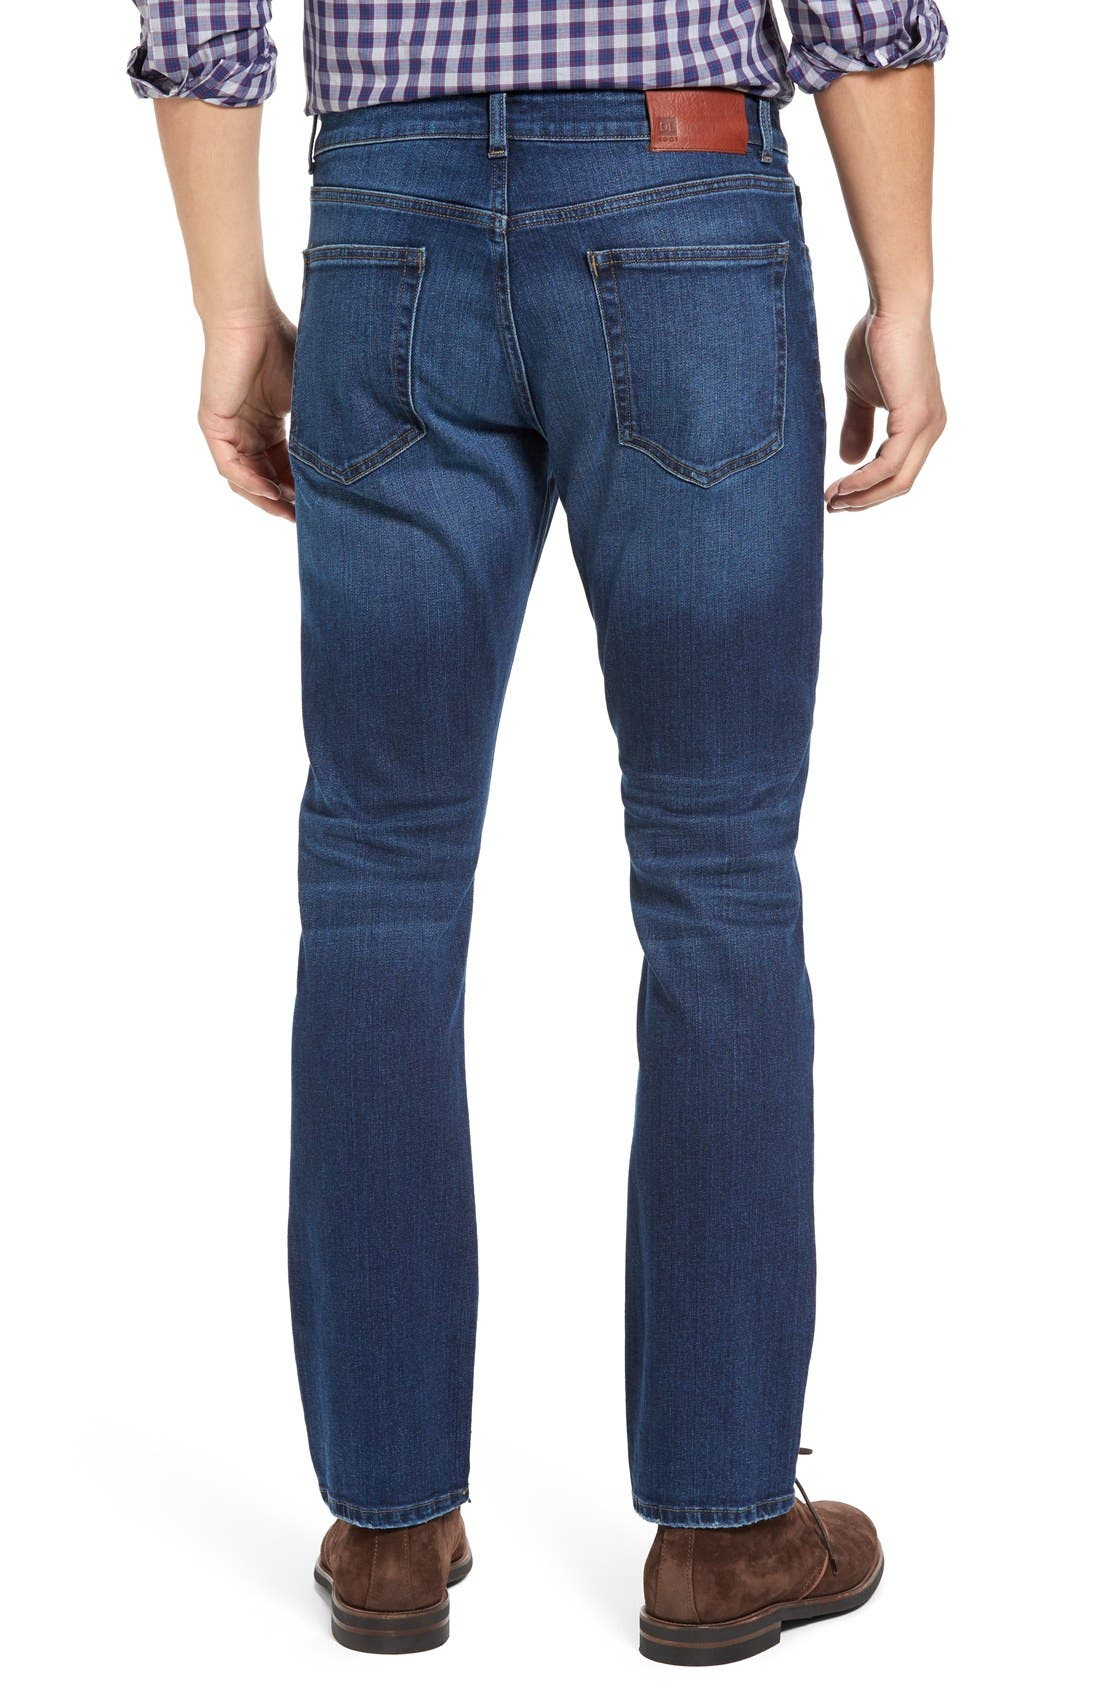 Alternate Image 2  - DL1961 Russel Slim Straight Fit Jeans (Acre)